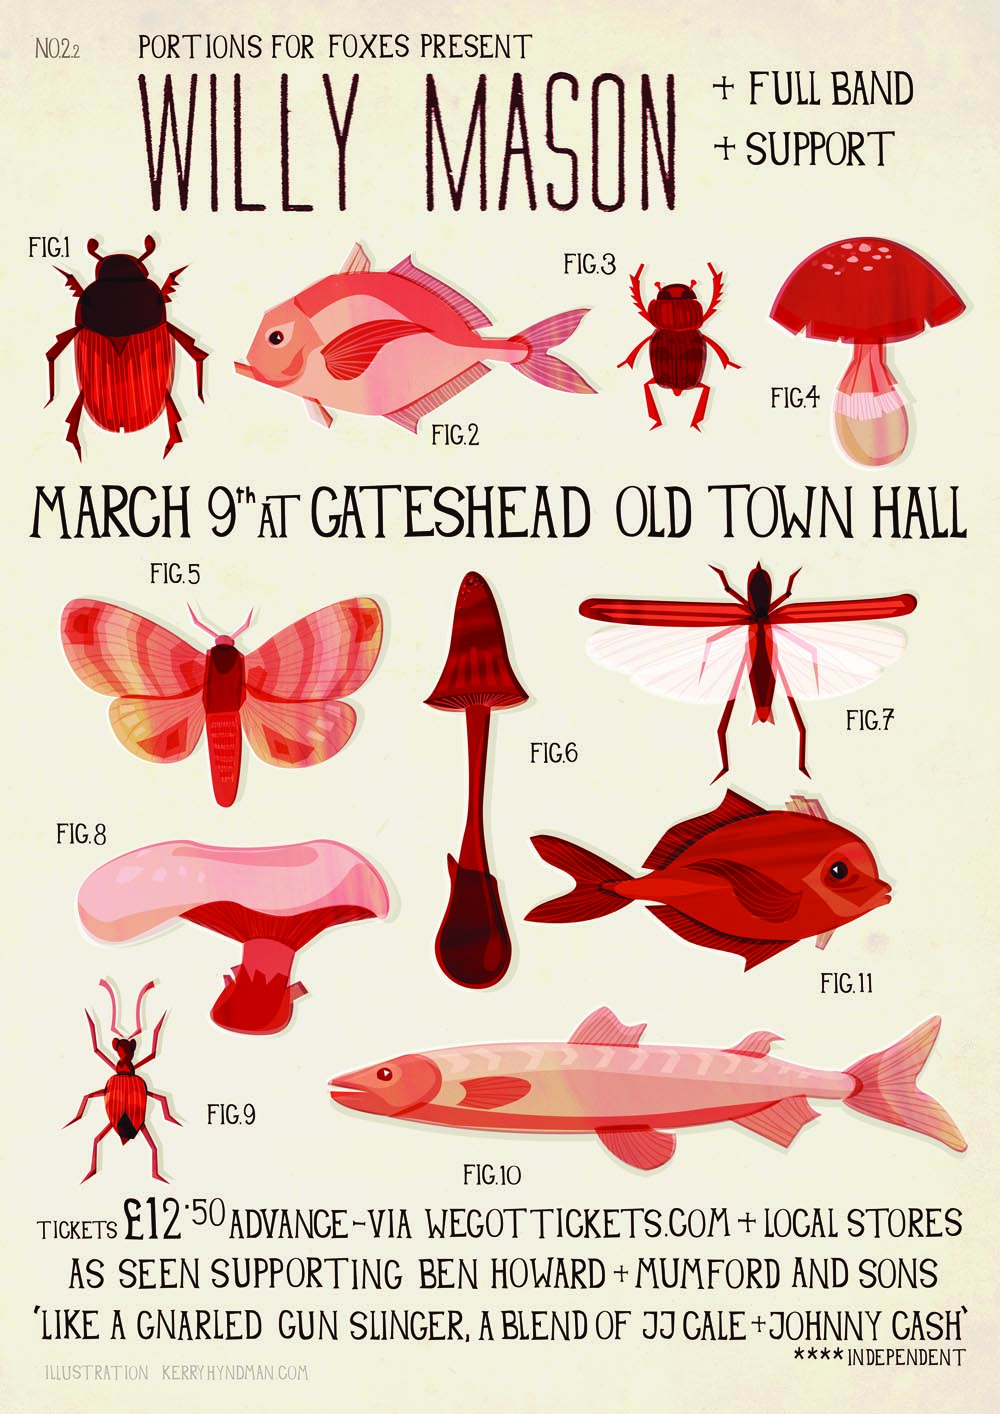 Here's my new gig poster for Willy Mason gig at Gateshead old town hall you can buy tickets  HERE